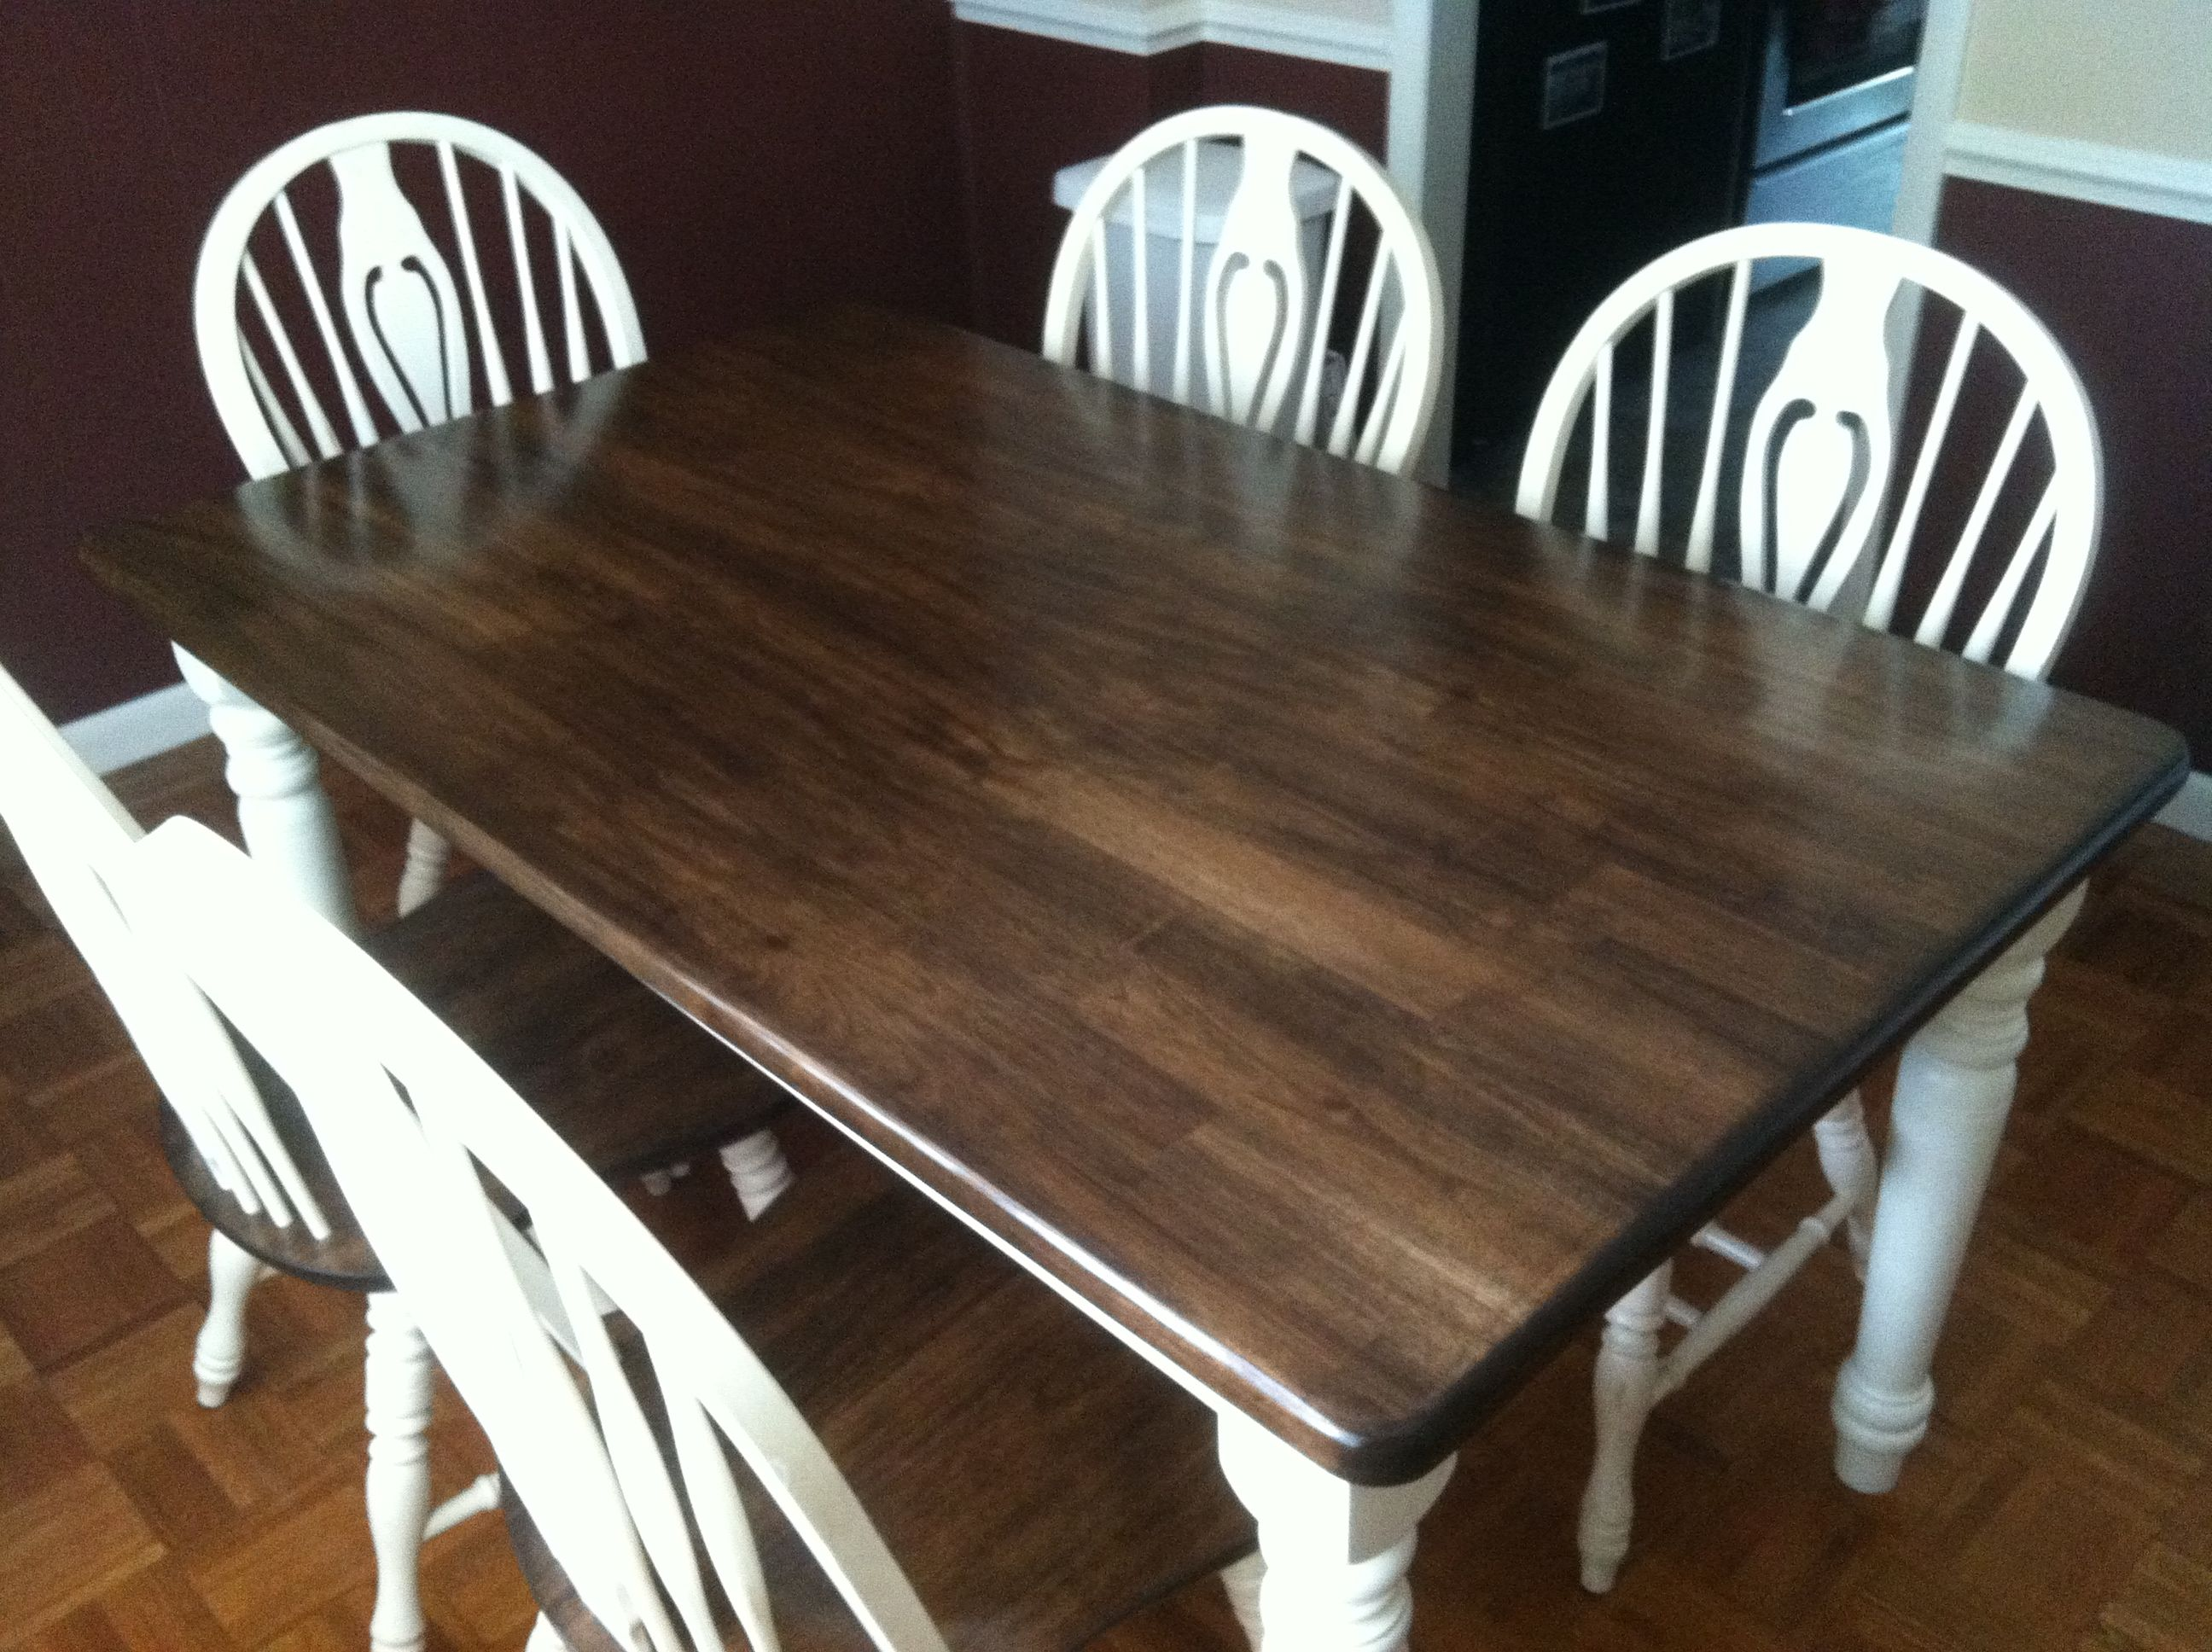 $5 kitchen table and chairs, sanded, stained and poly-ed